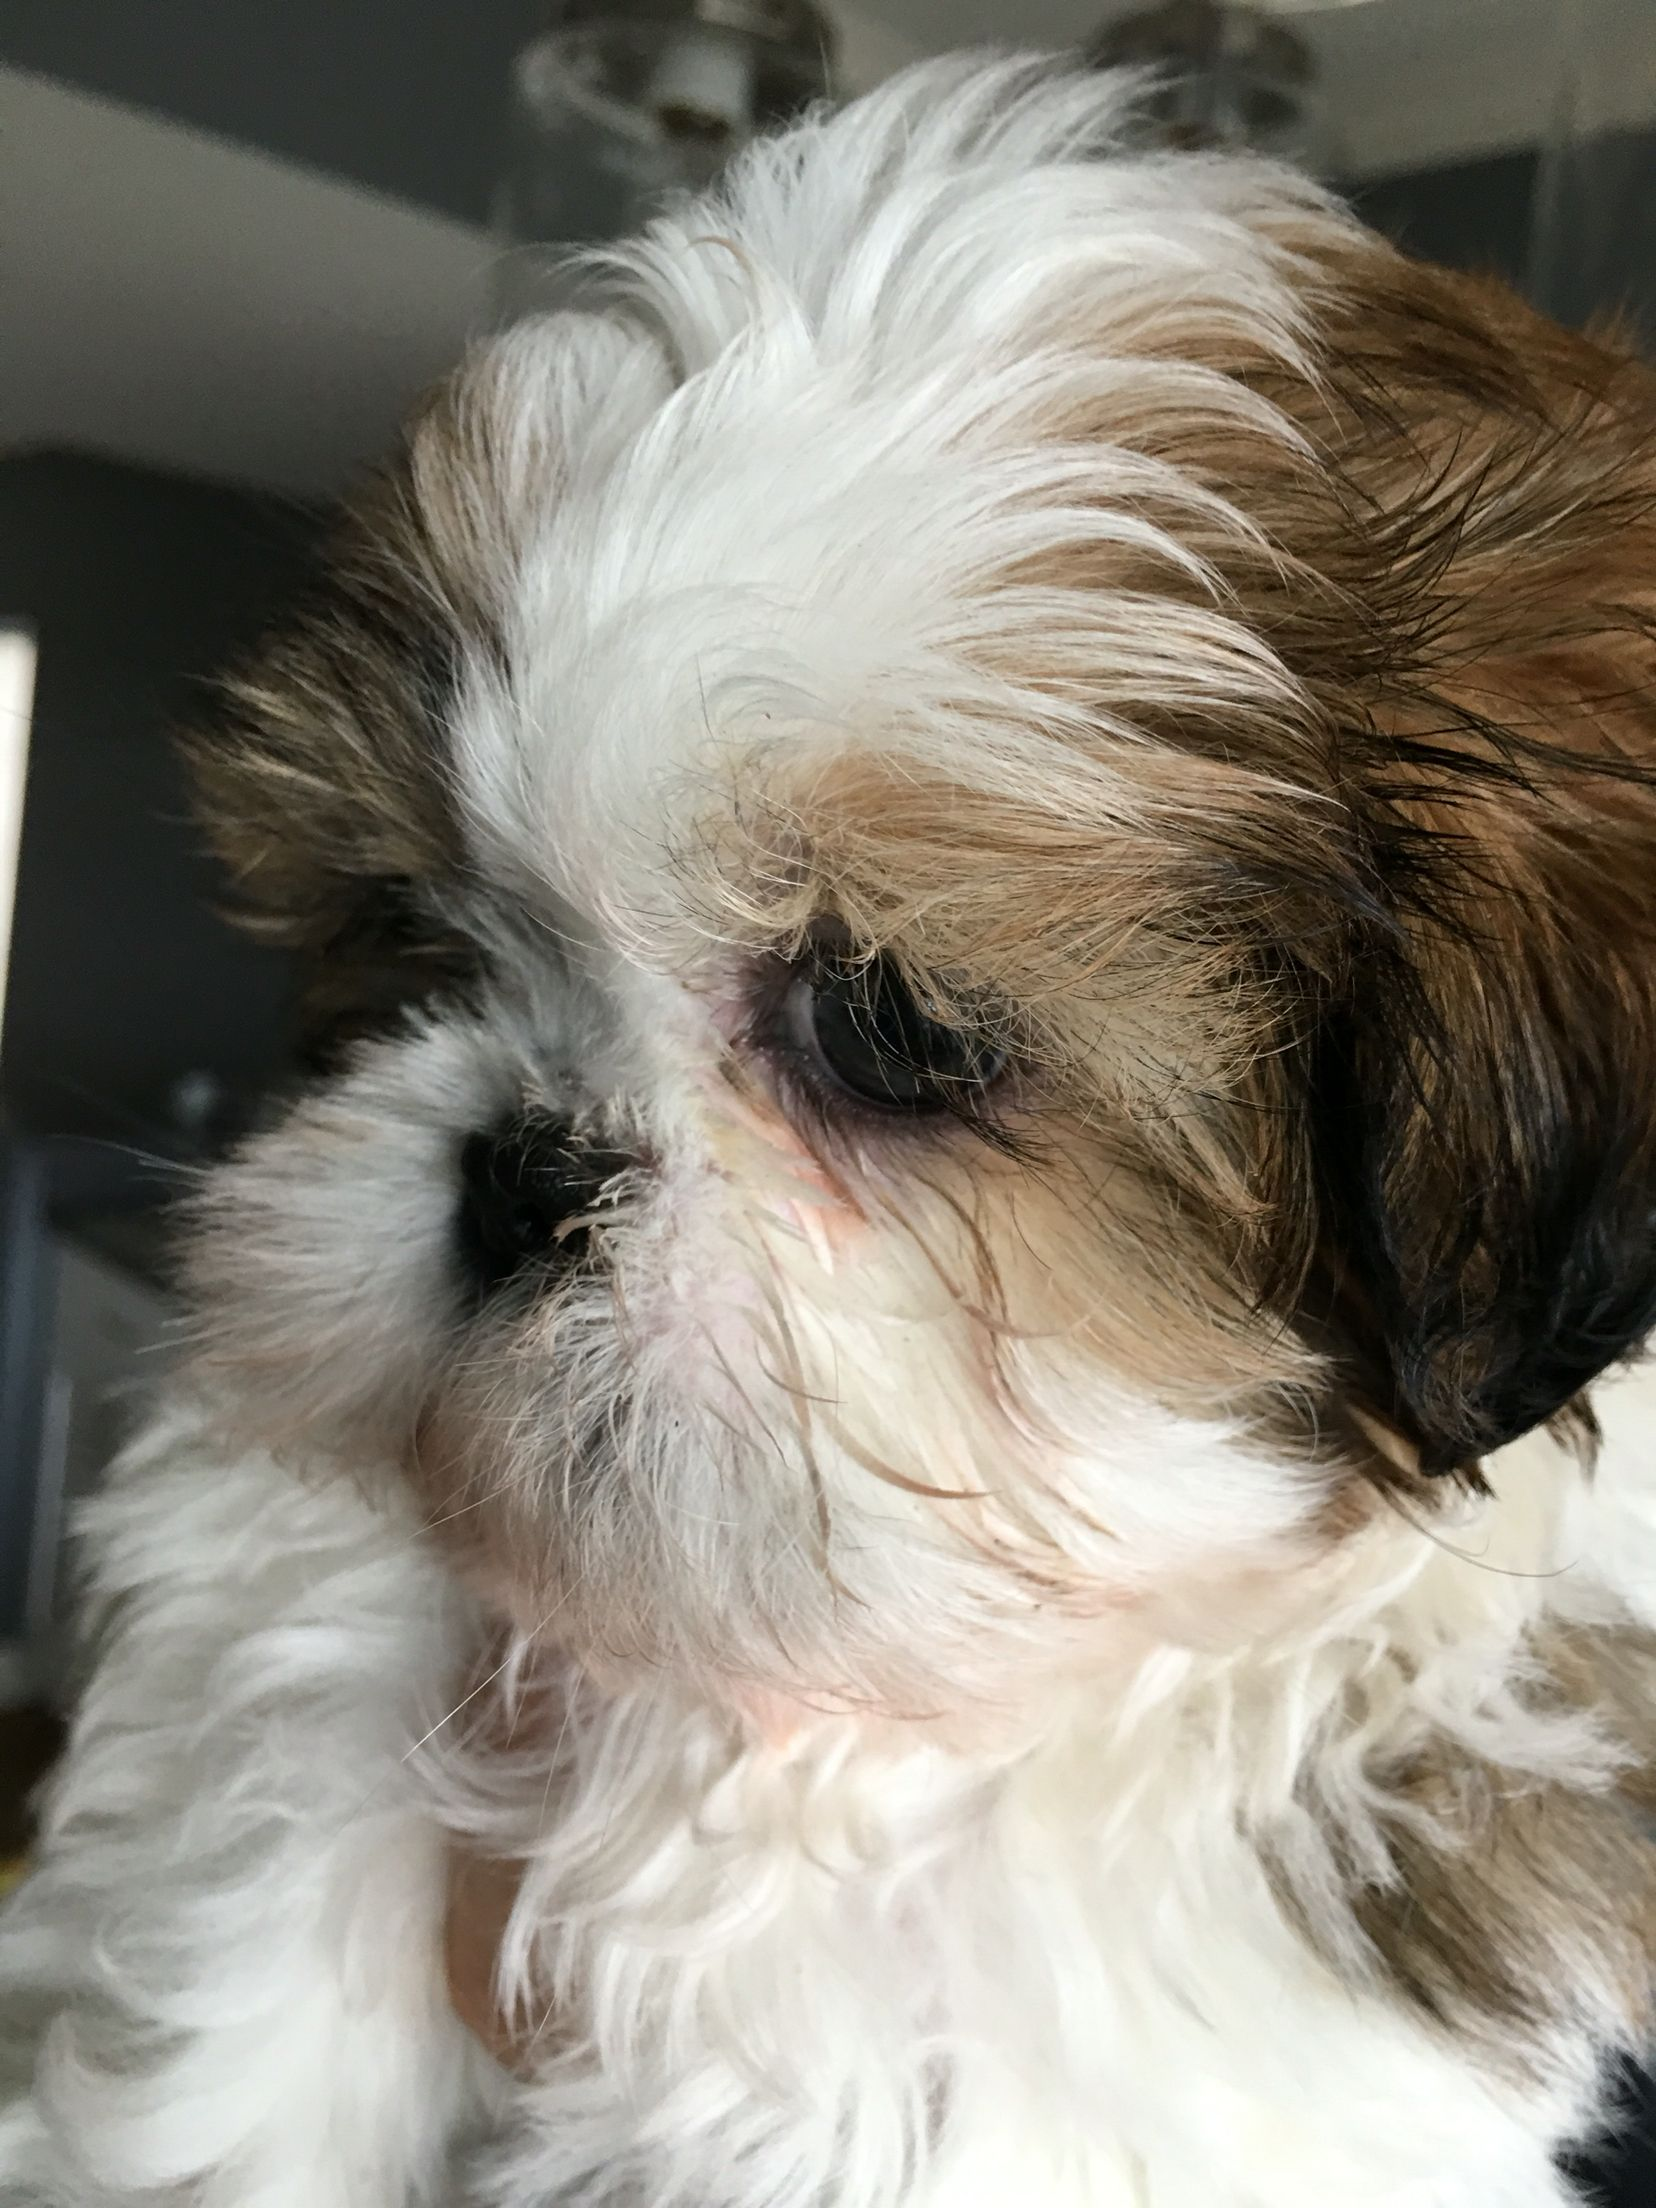 Cute Little Fluffy Soft Baby Shih Tzu Foxiepup Shih Tzu